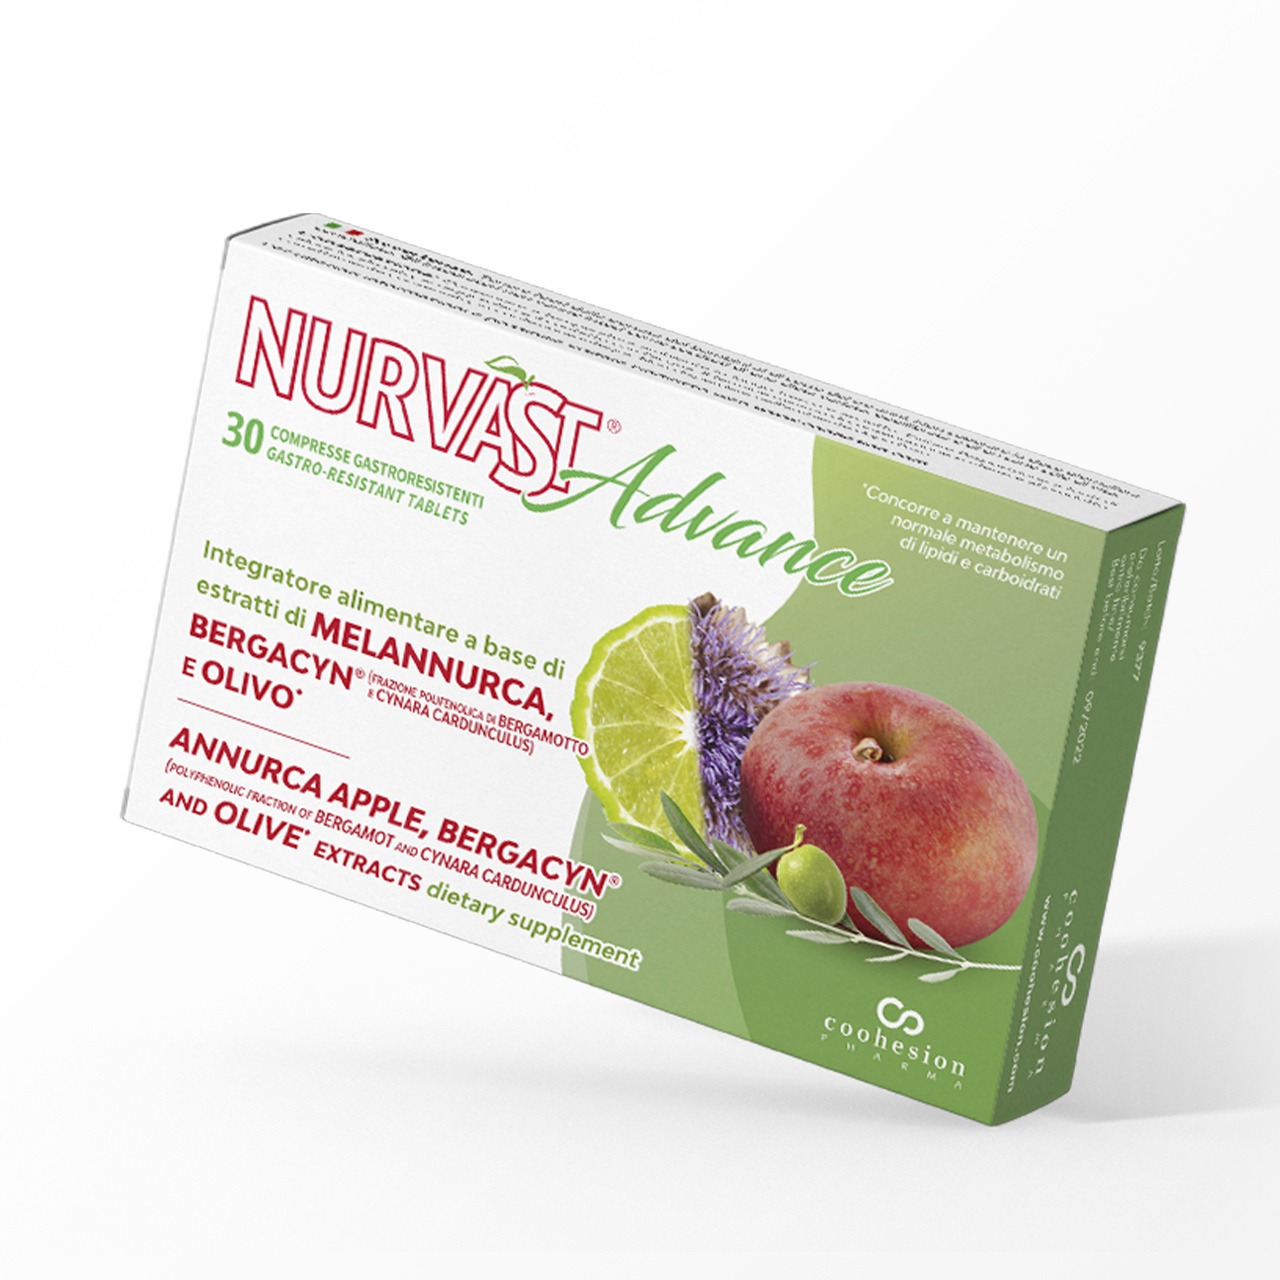 Nurvast Advance - Supplement based on Annurca apple extract, Bergacyn® and Olive